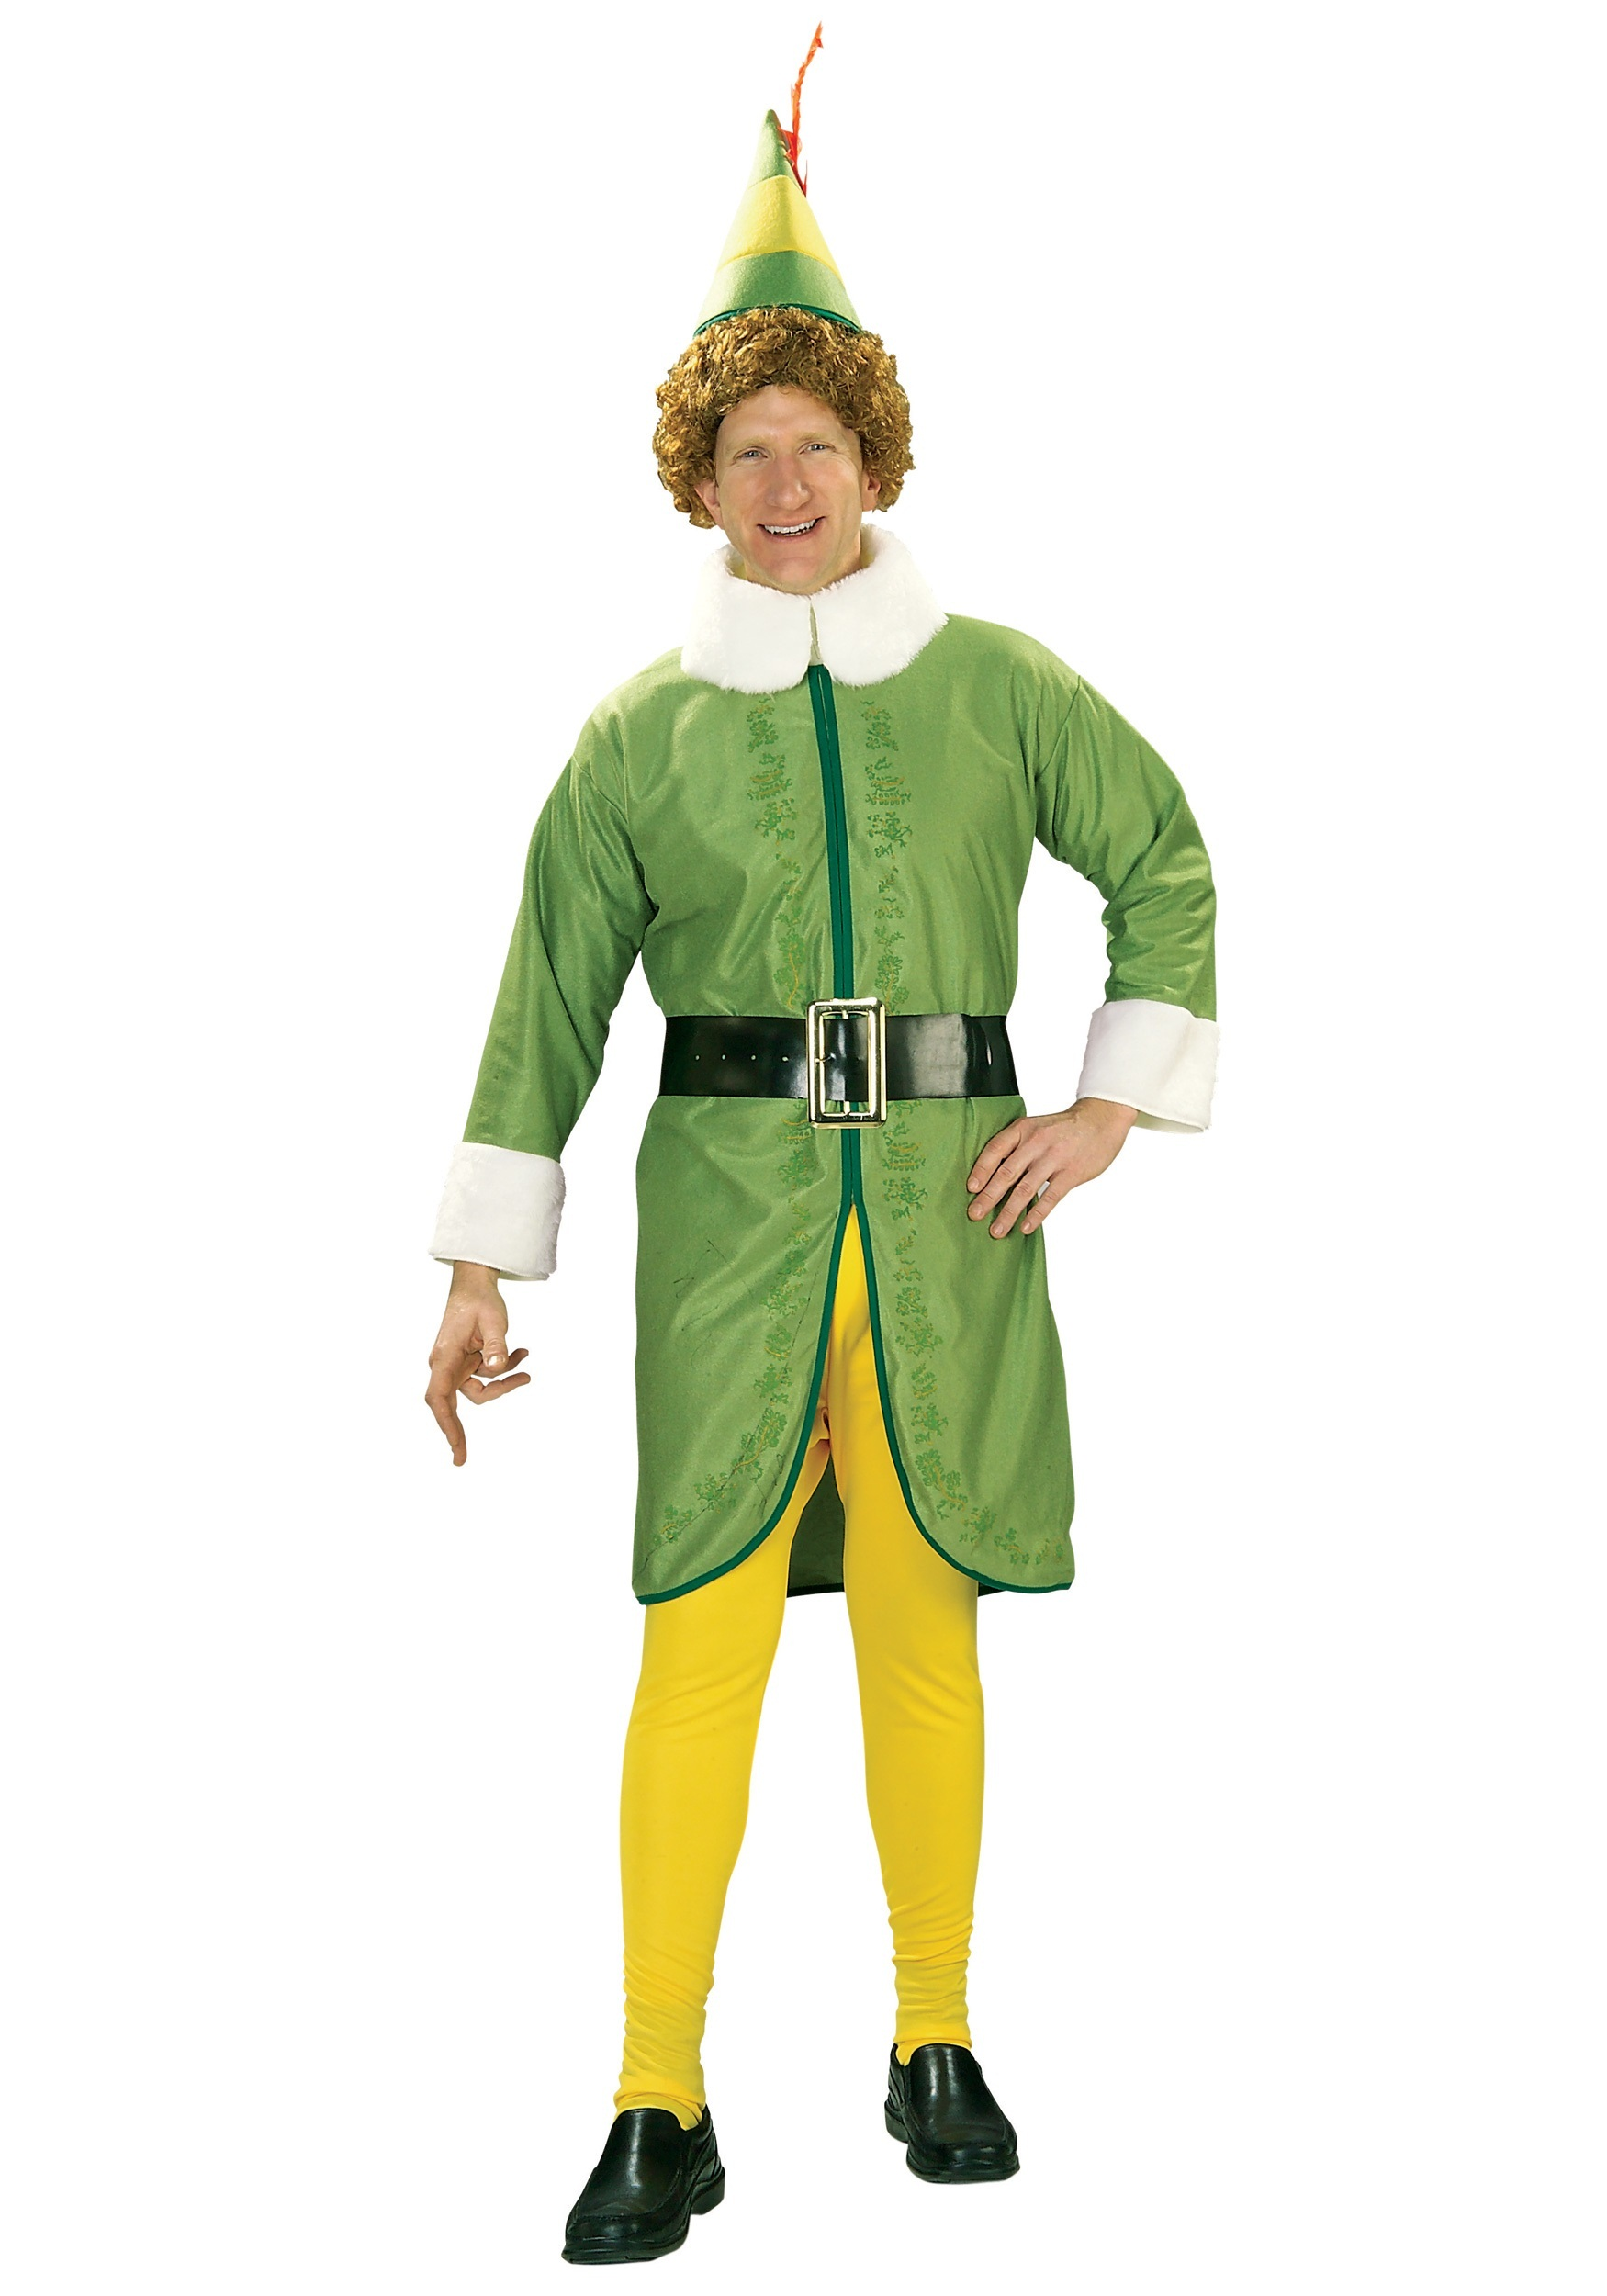 Plus Size Christmas Costumes.Plus Size Buddy The Elf Costume